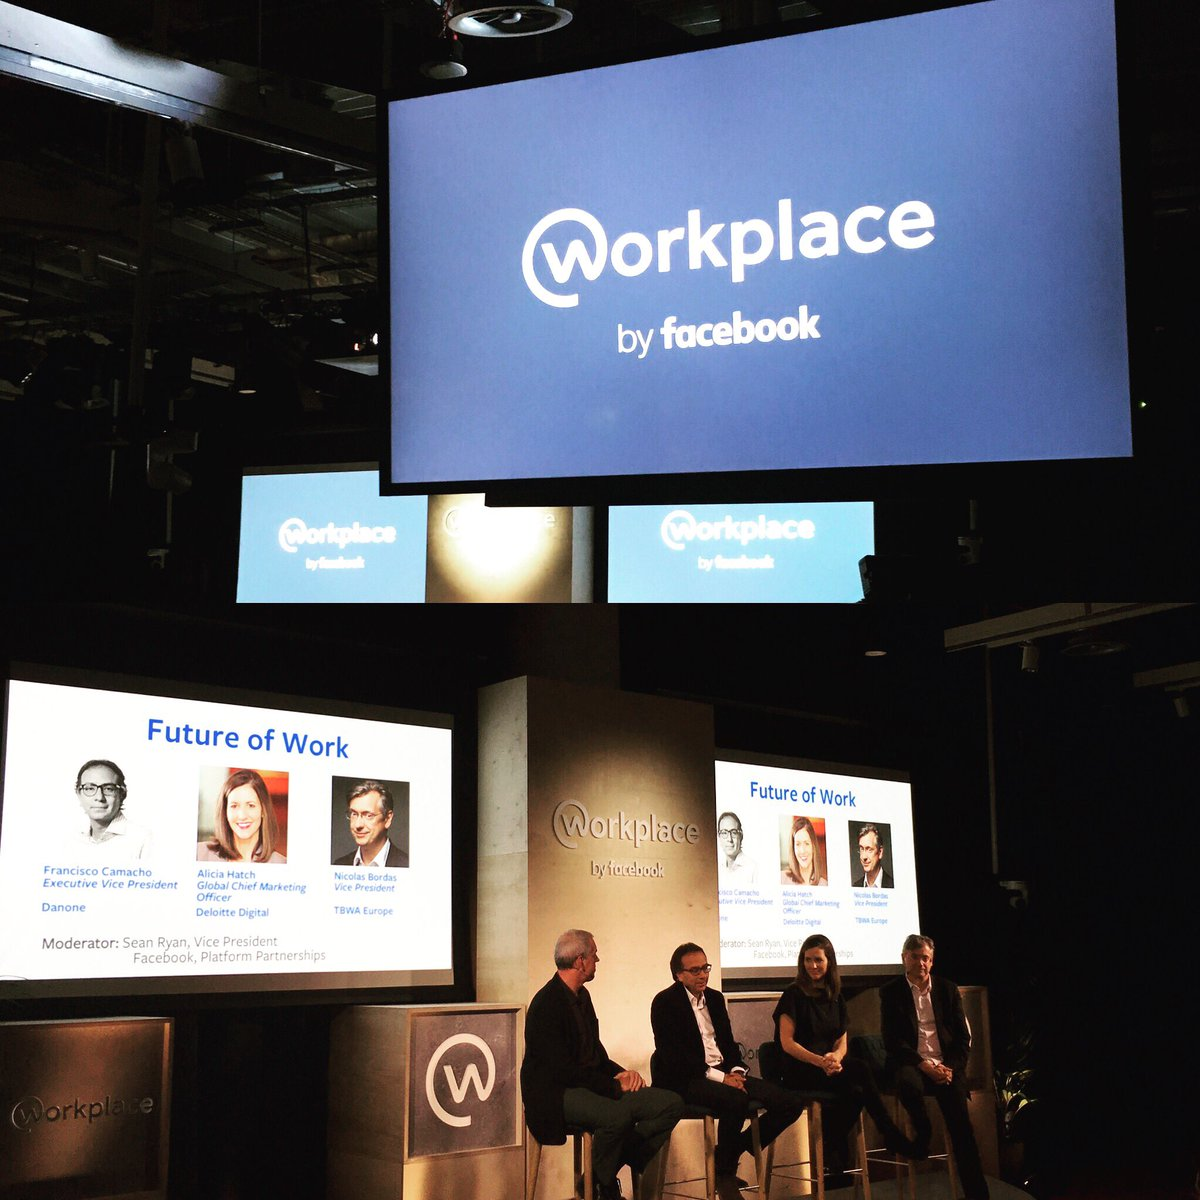 Launching Workplace By Facebook, with our friends from Deloitte Digital, TBWA and Danone. https://t.co/BfqxEM2YrS